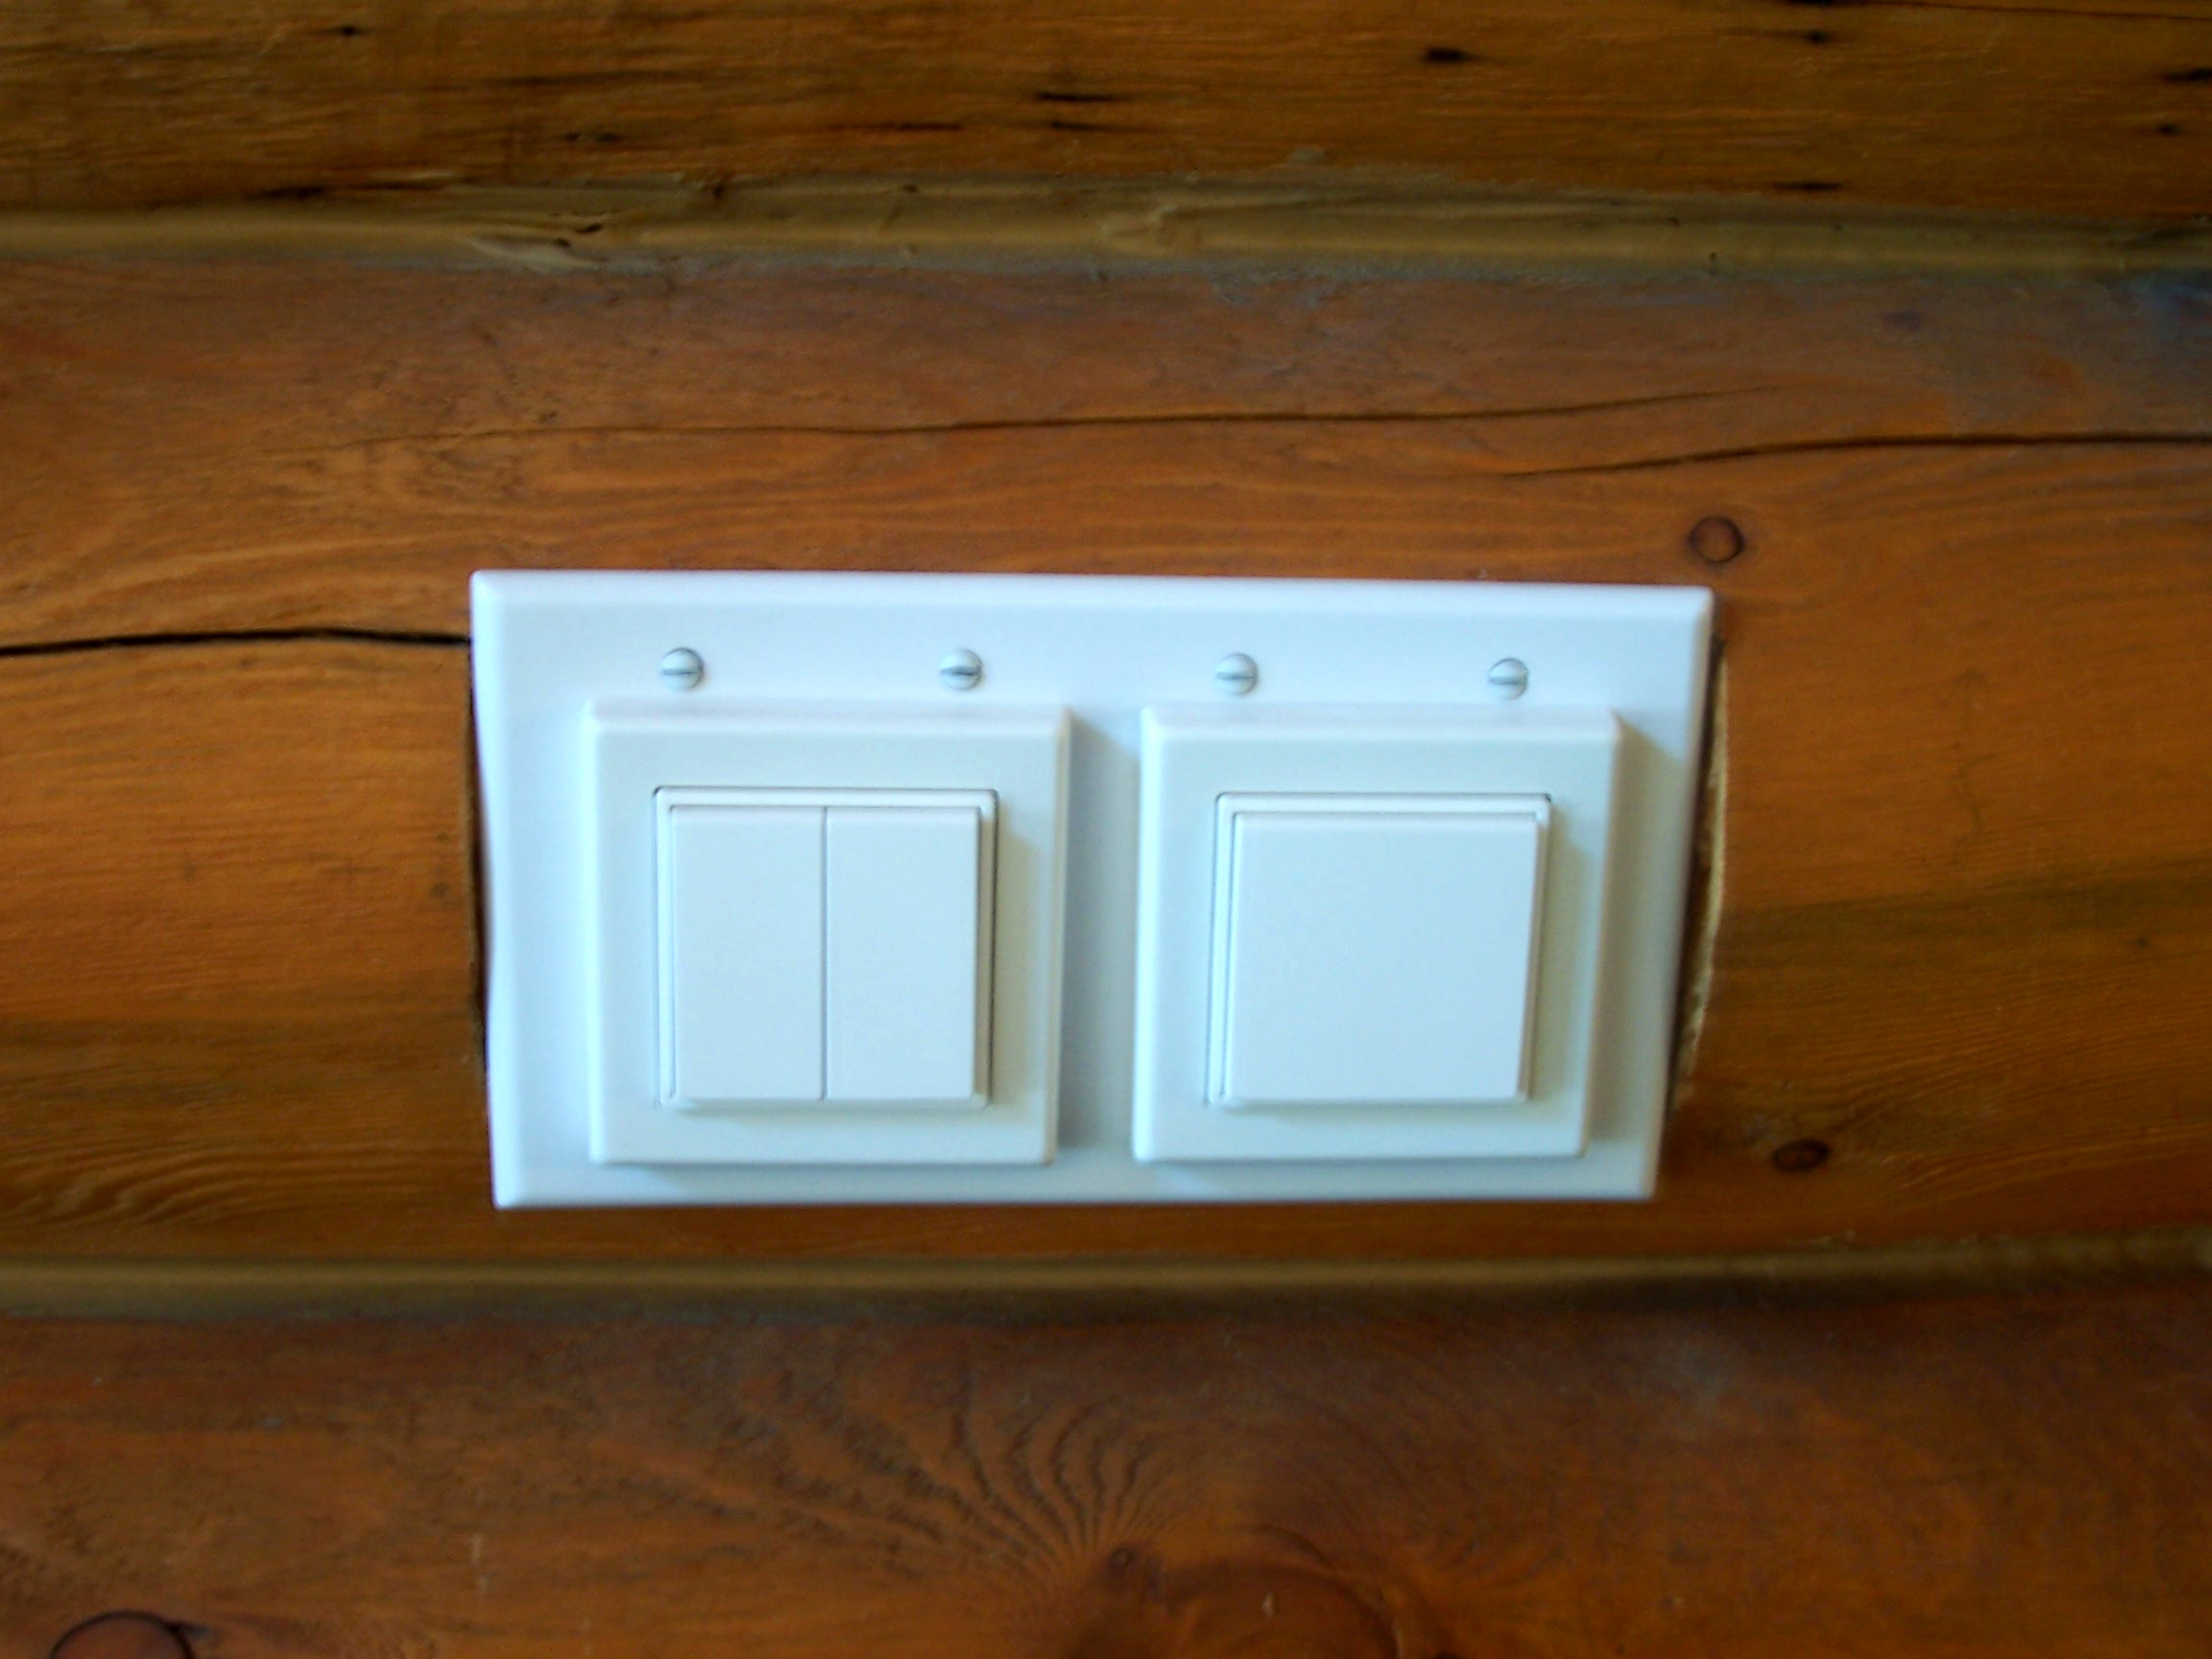 Ad Hoc Electronics Promotes EnOcean Products for Wiring Log Homes.